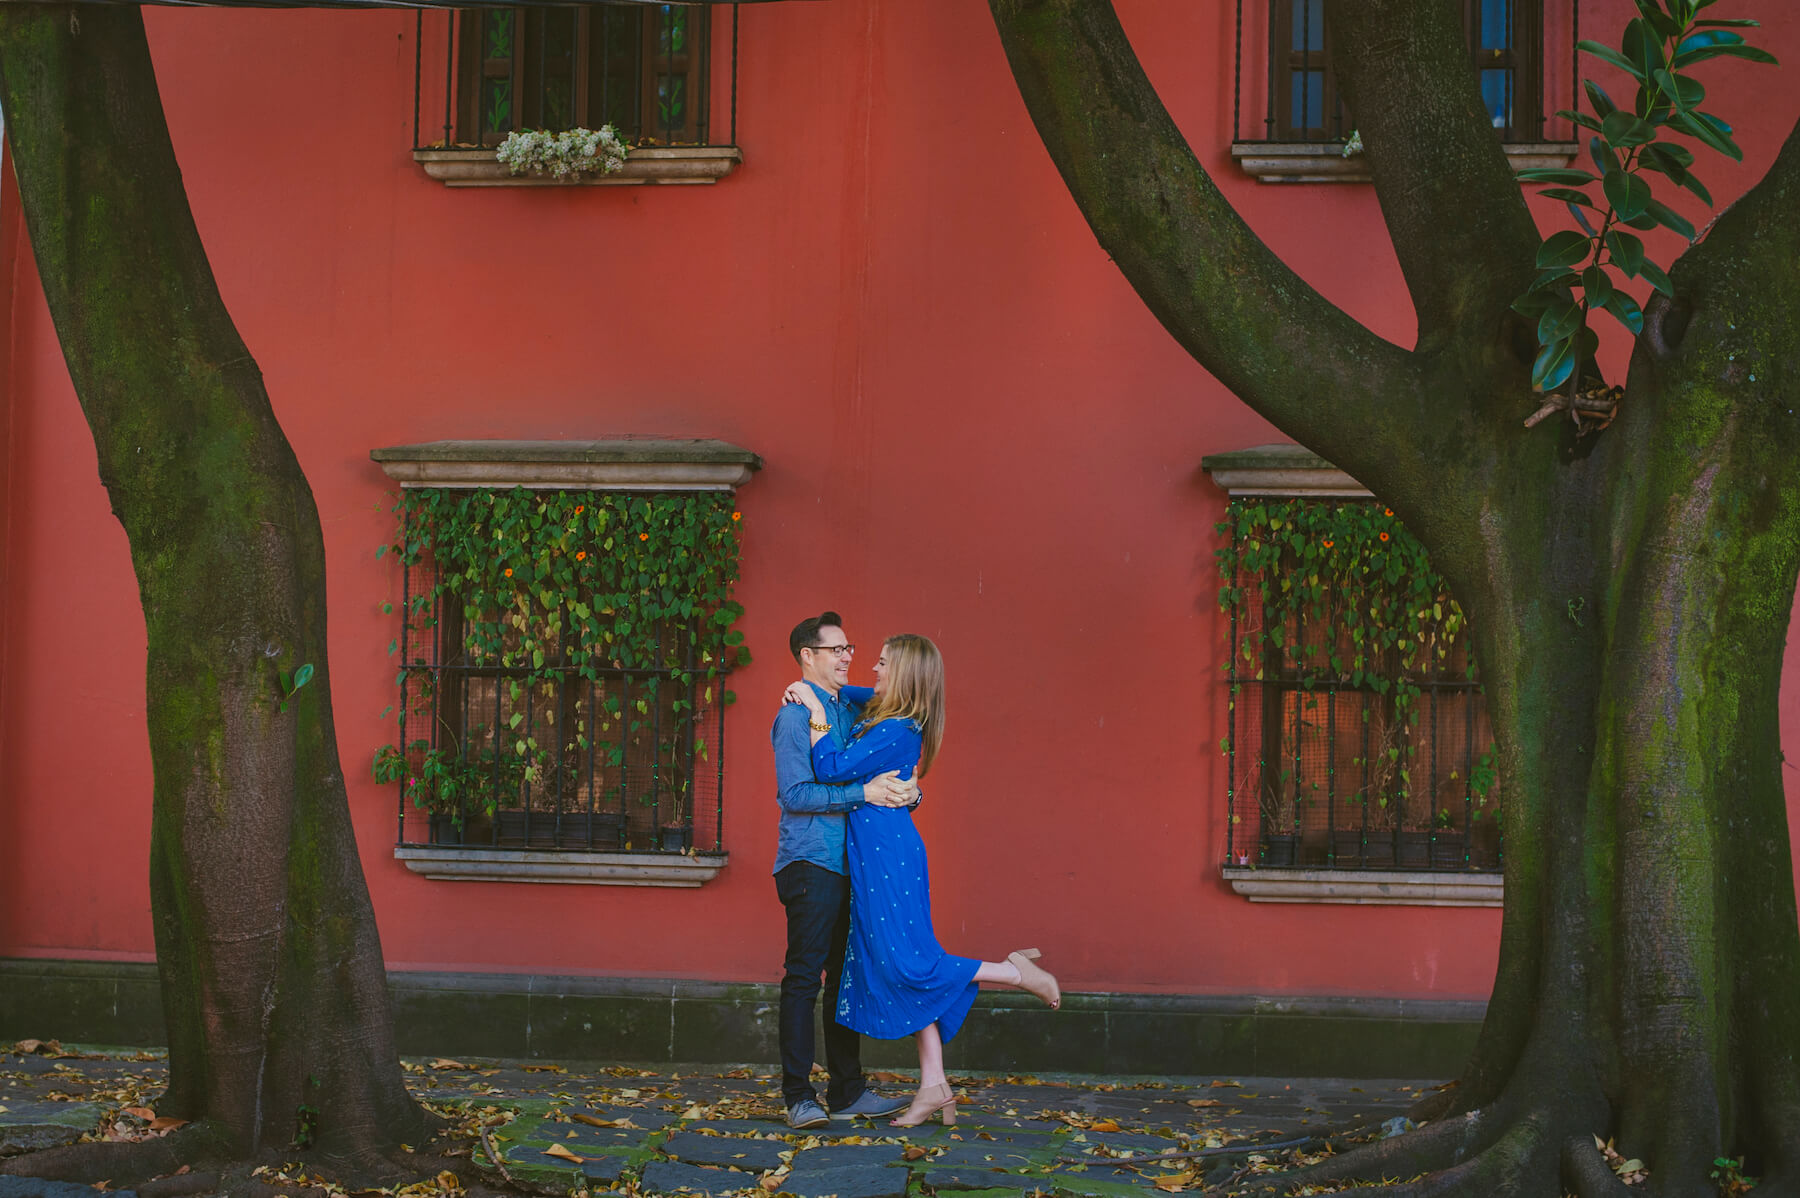 couple hugging each other in front of a colorful building in Mexico City, Mexico